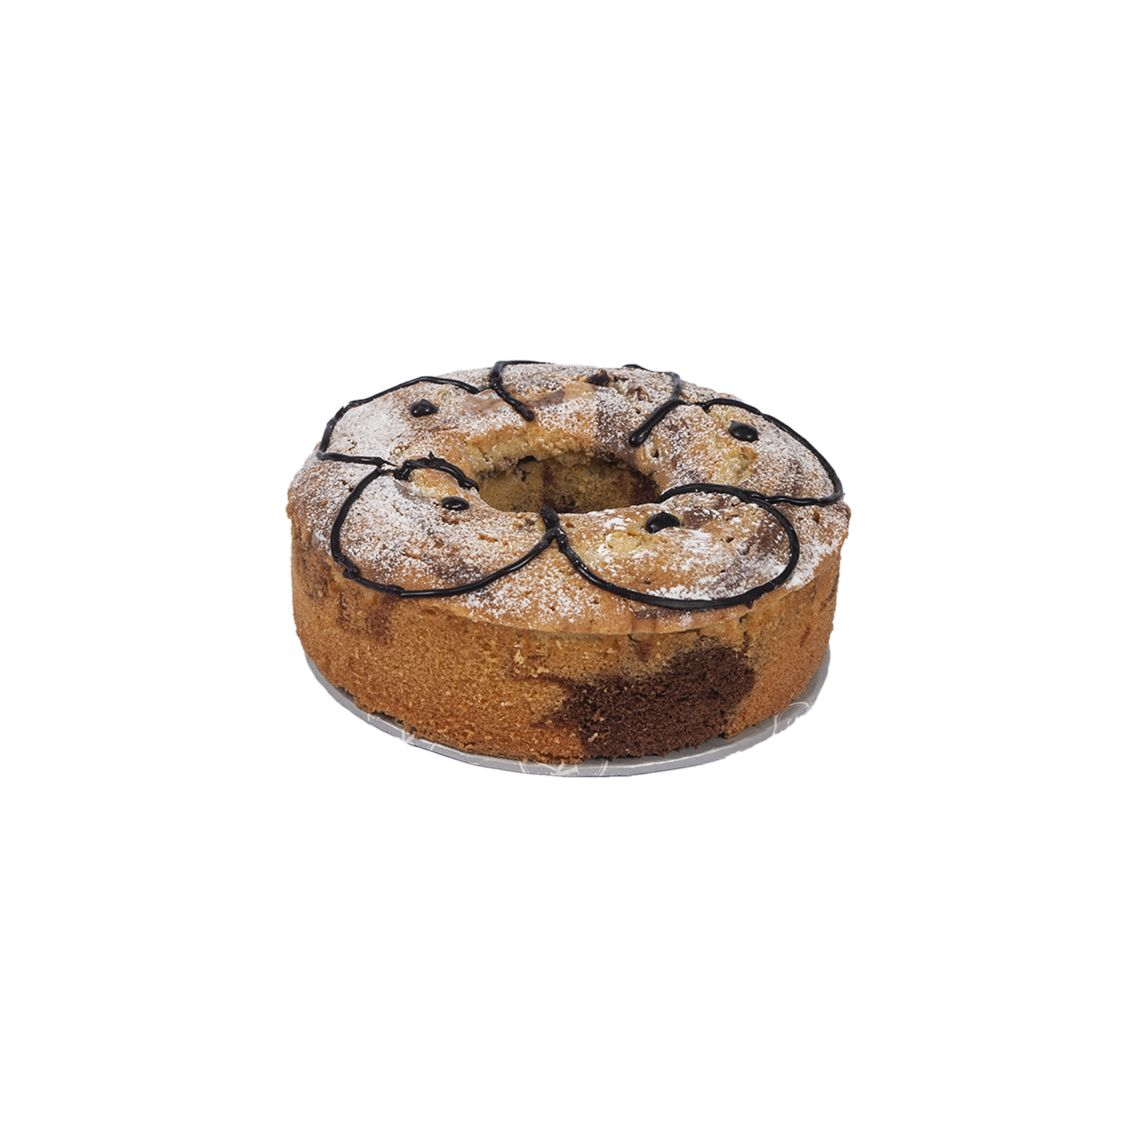 Kitchen Cuisine Default Category Chocolate Marble Cake